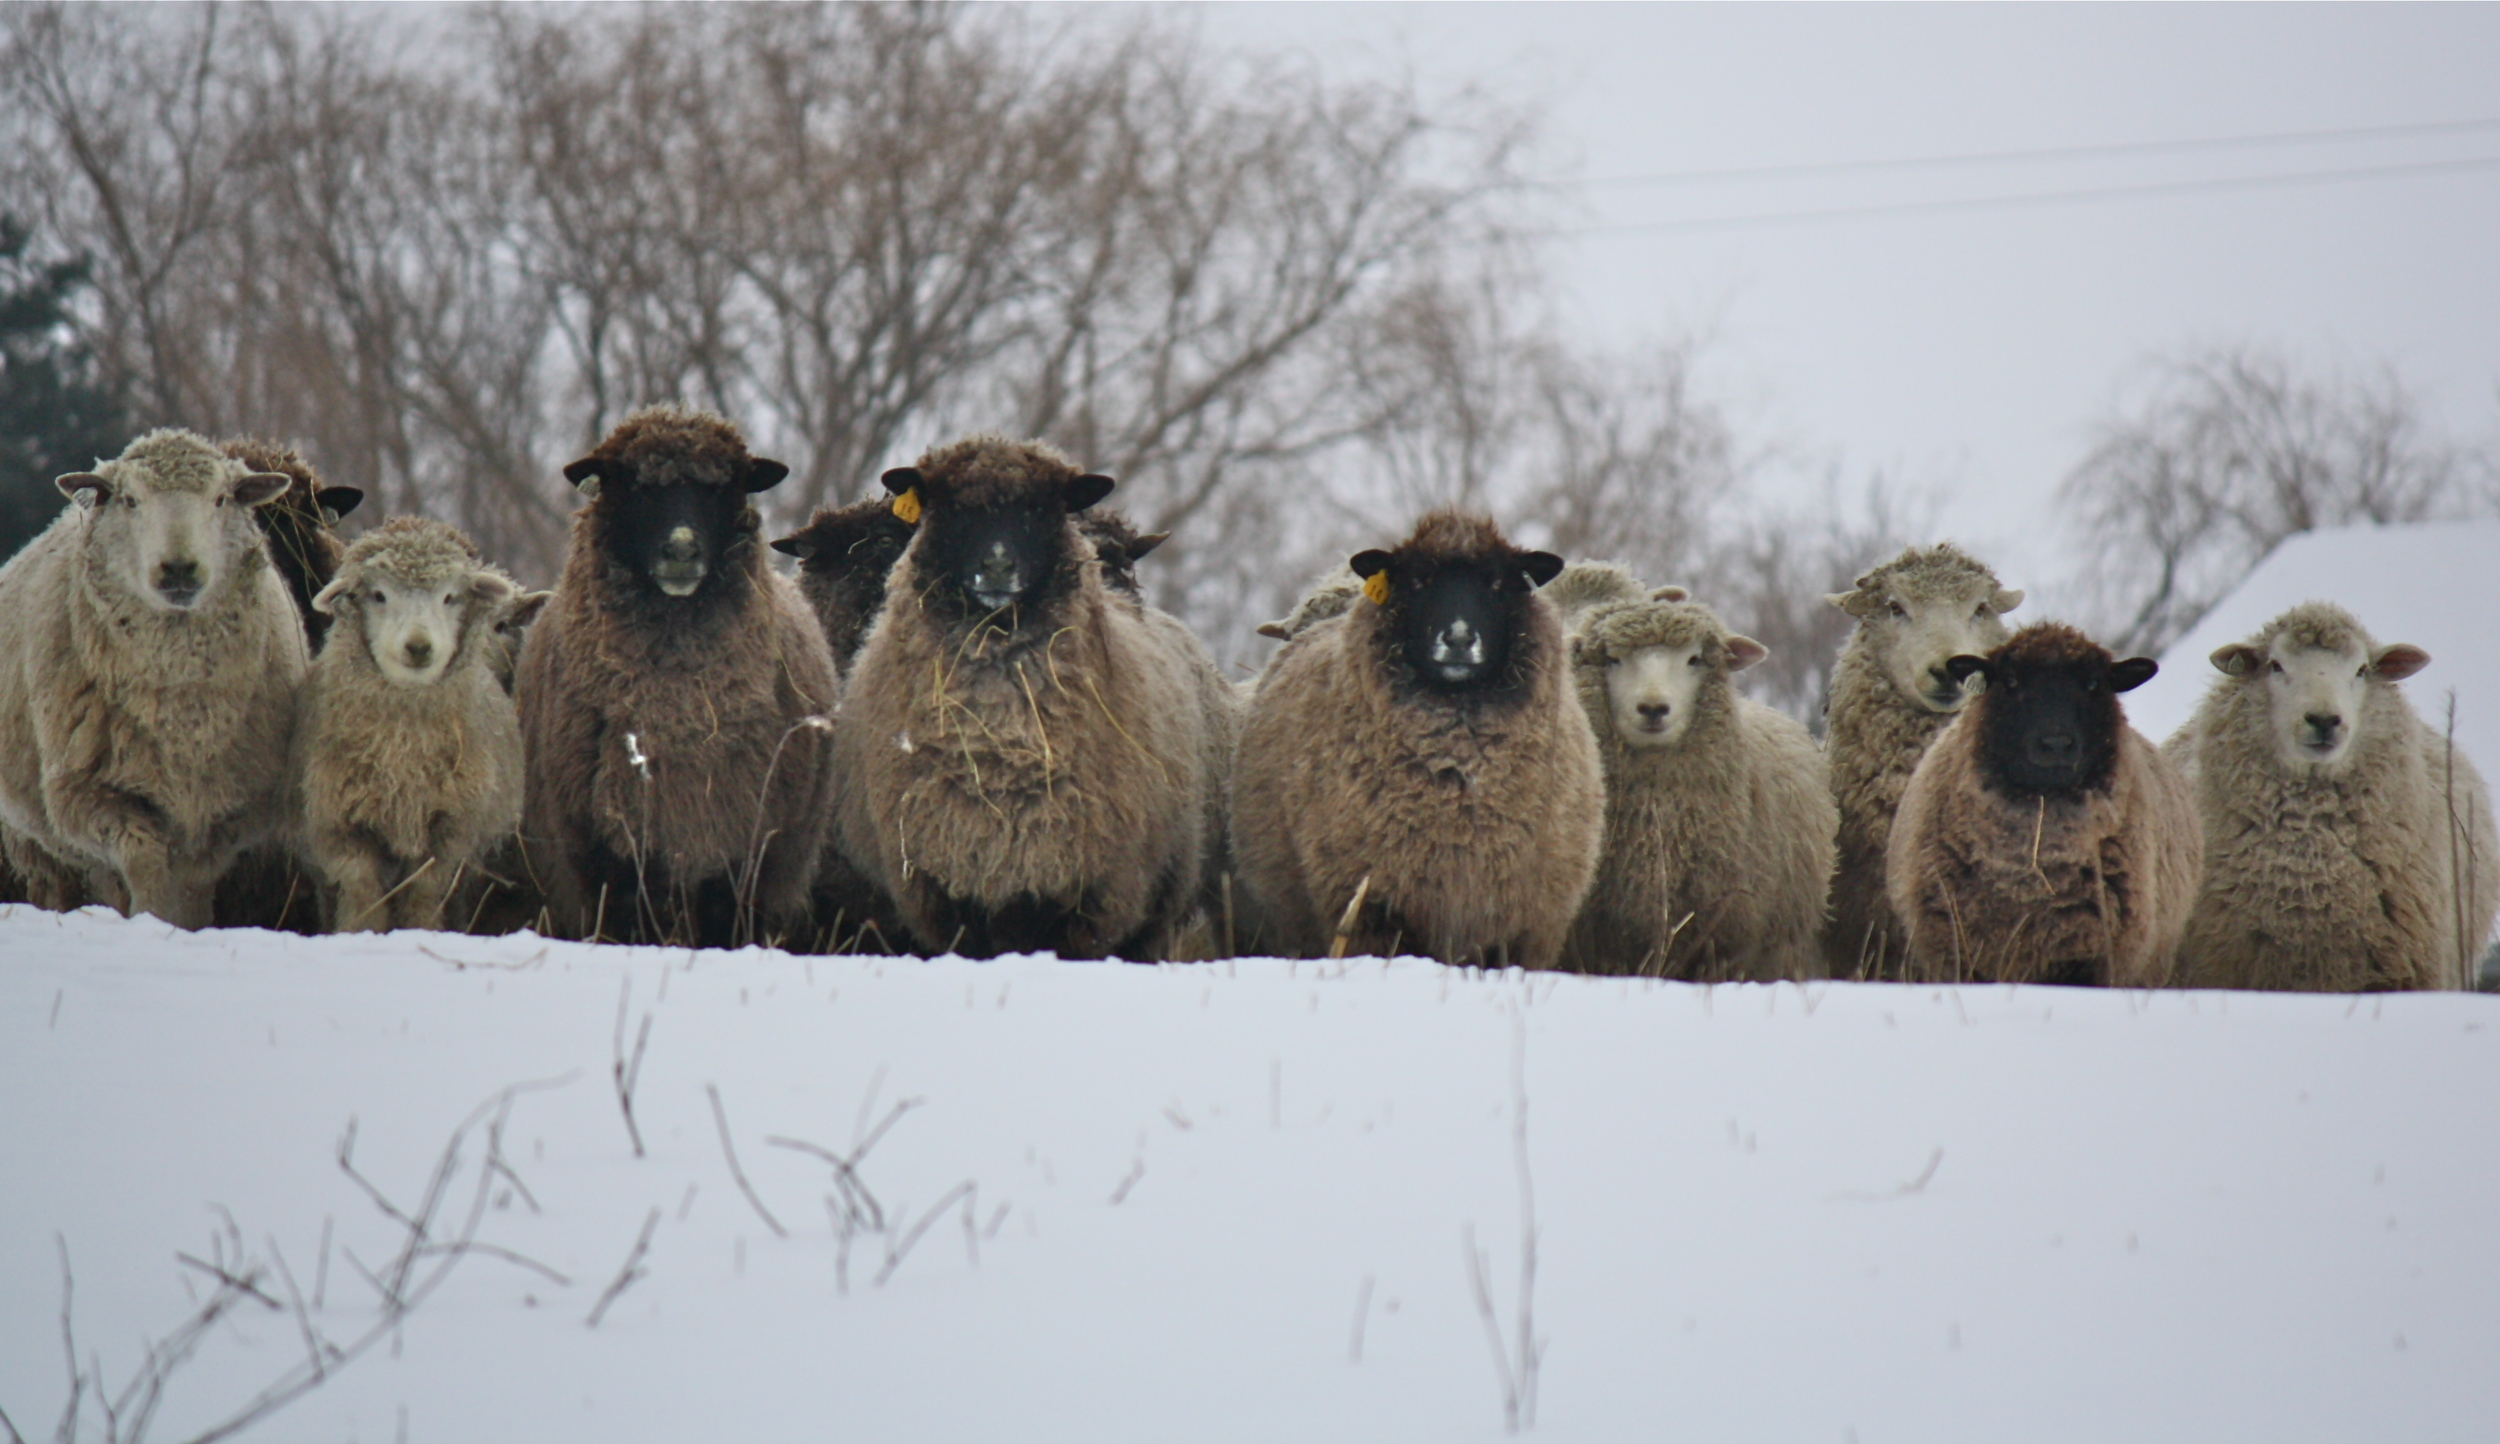 The day the sheep were happy to see me.